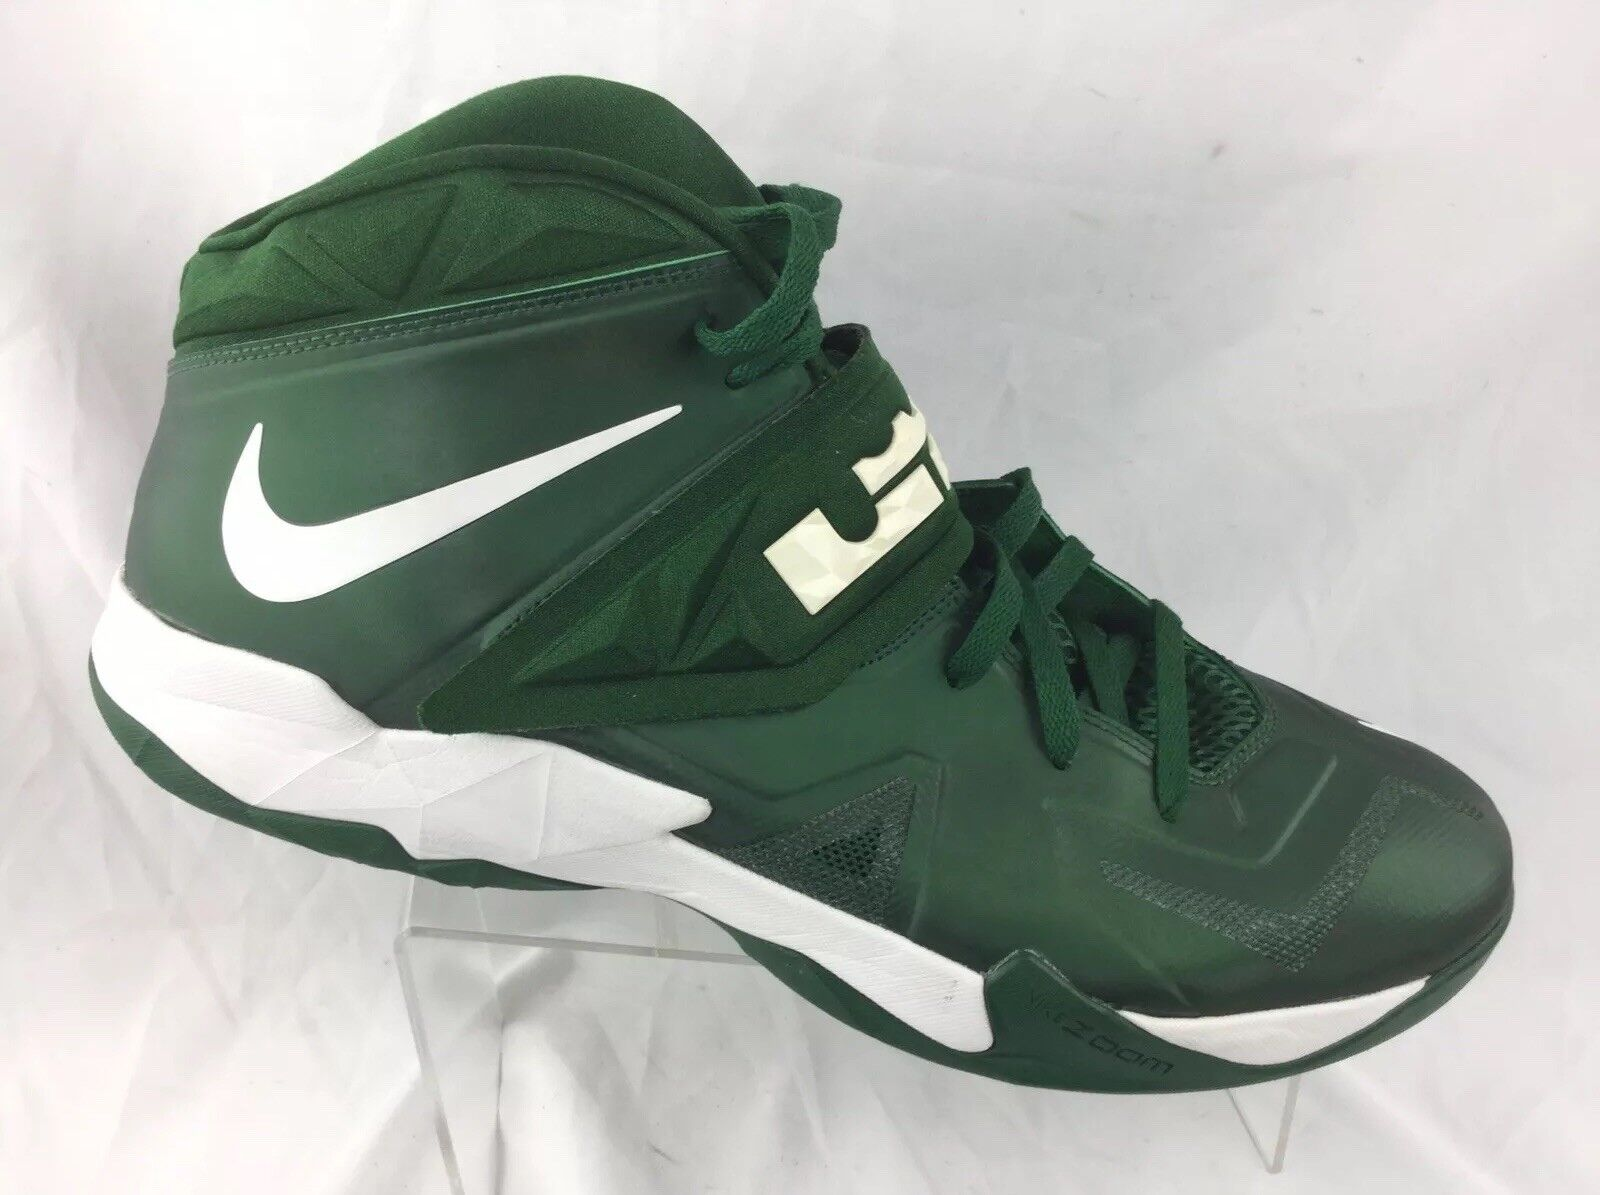 2c38d0696c4 Nike Lebron James Menzoom Soldier VII TB Basketball shoes 599263 301 Sz 17  Green